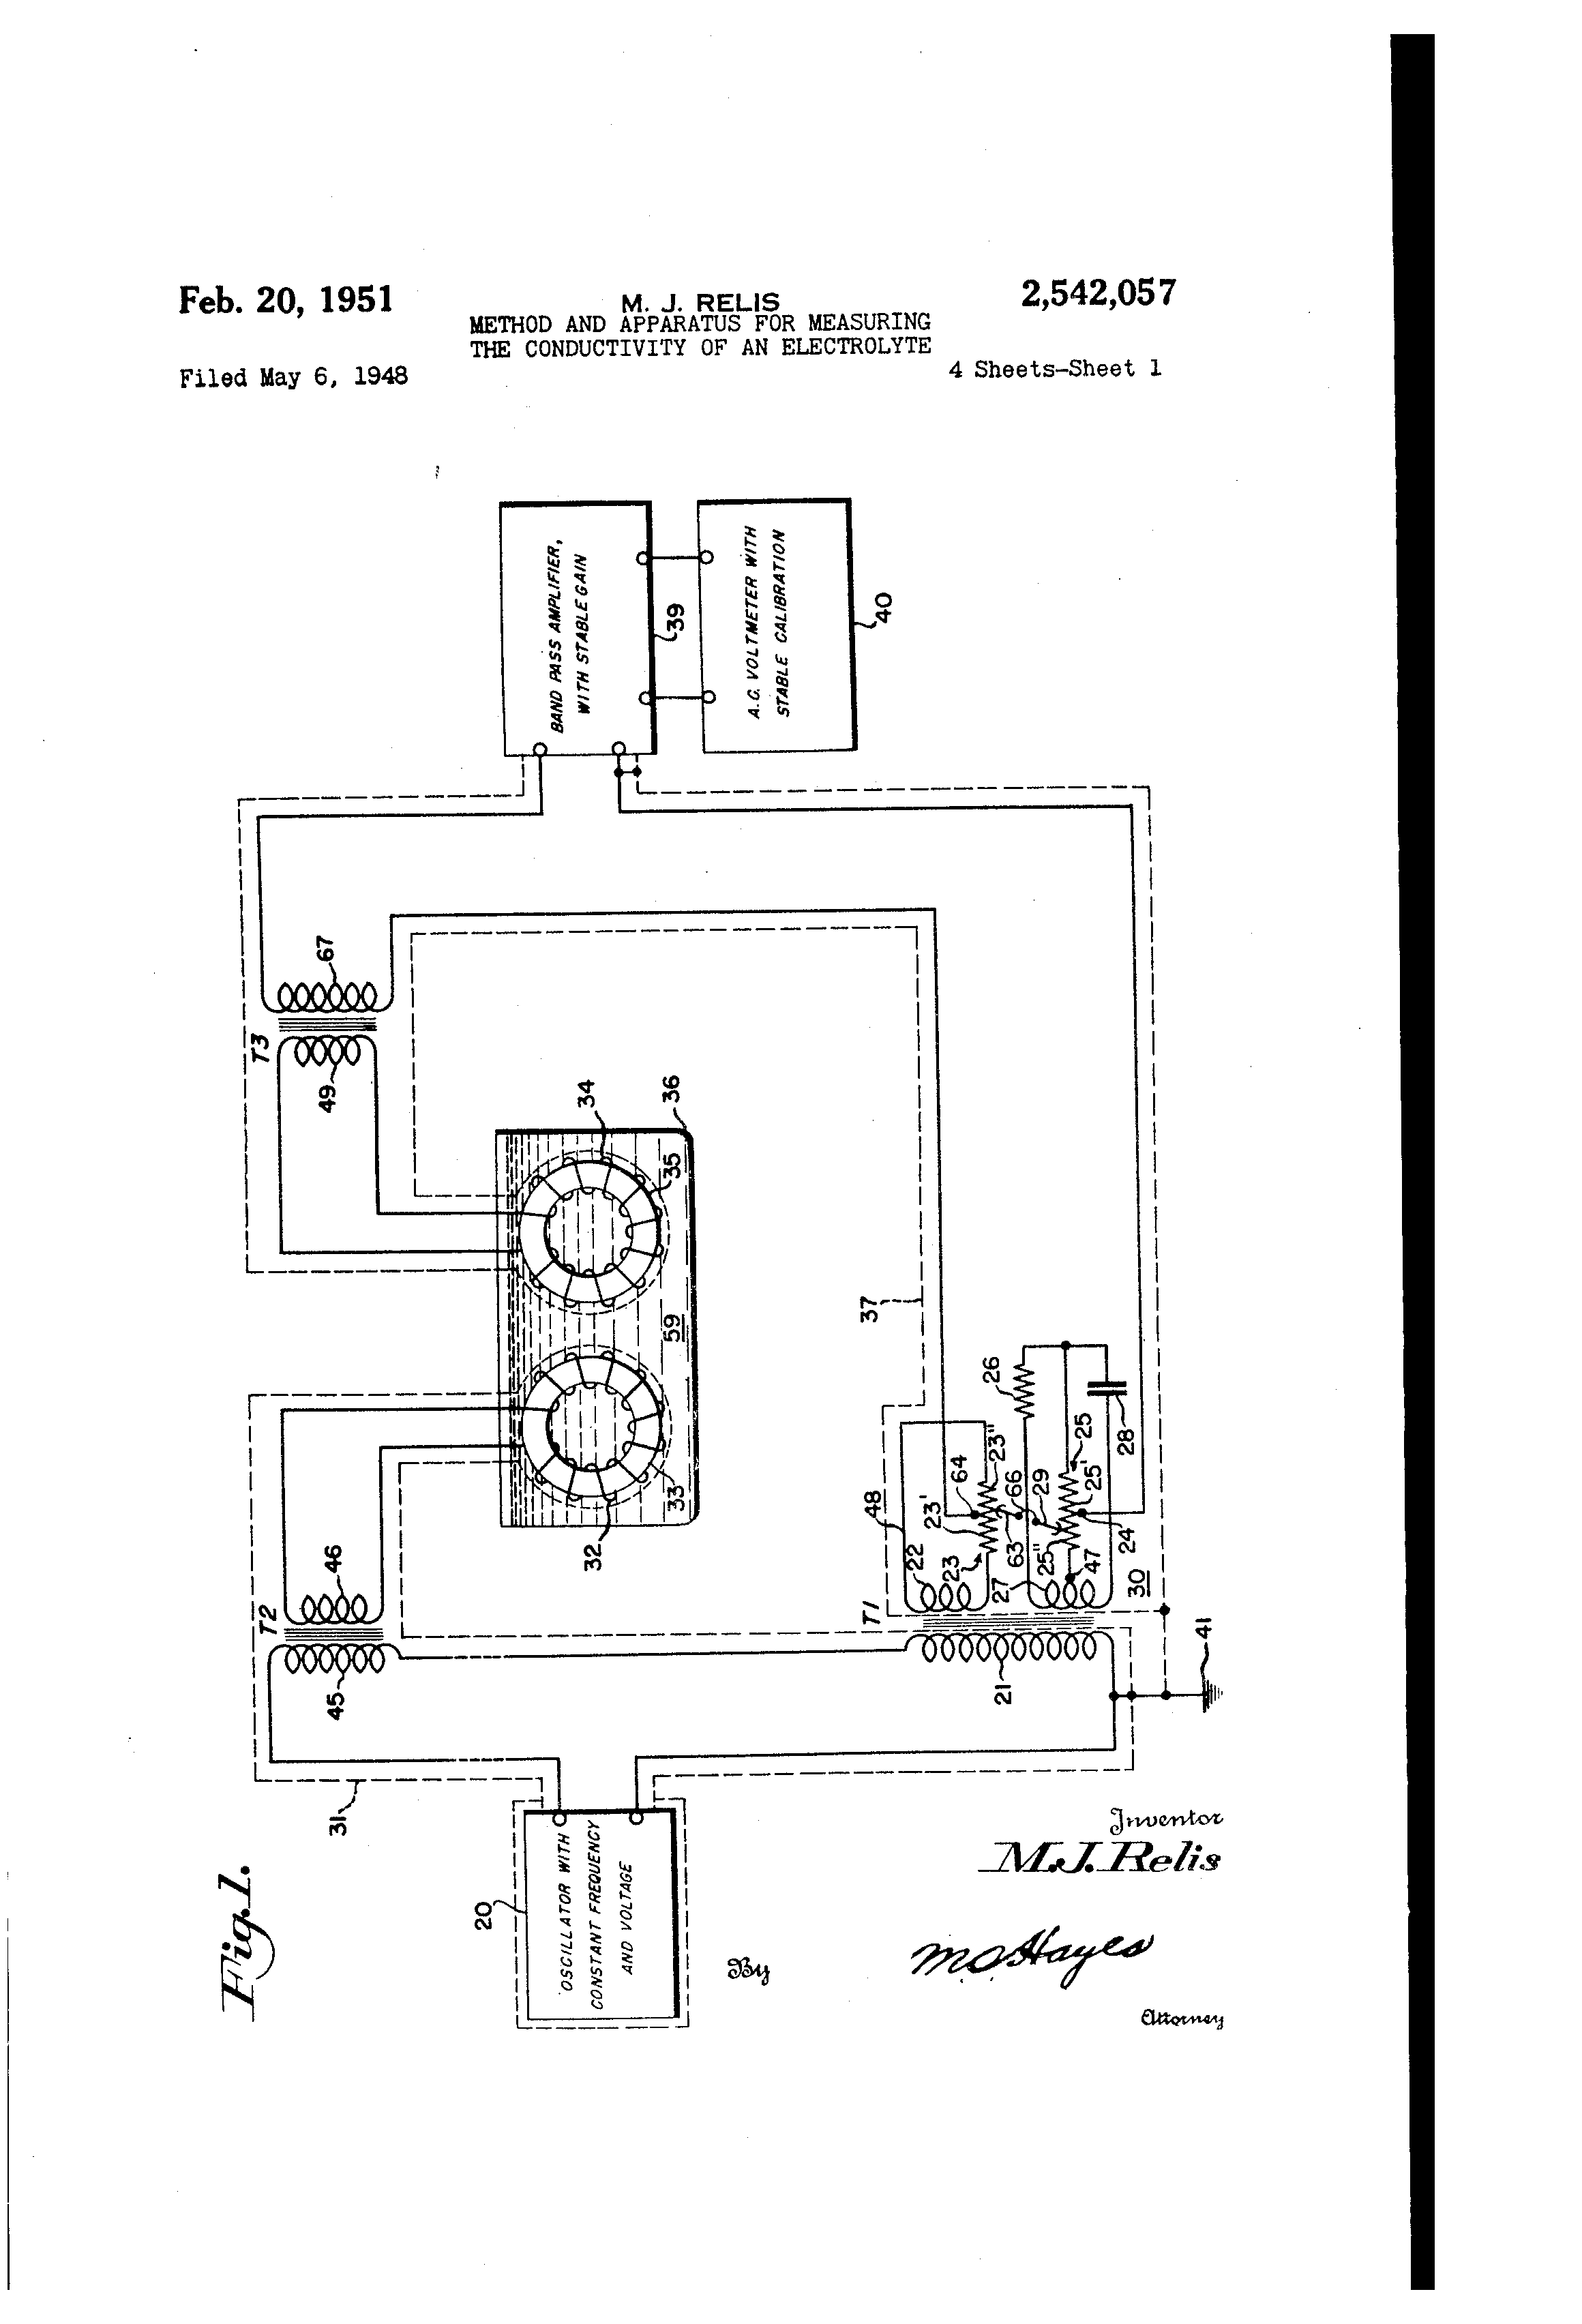 Conductivity Of Electrolyte : Patent us method and apparatus for measuring the